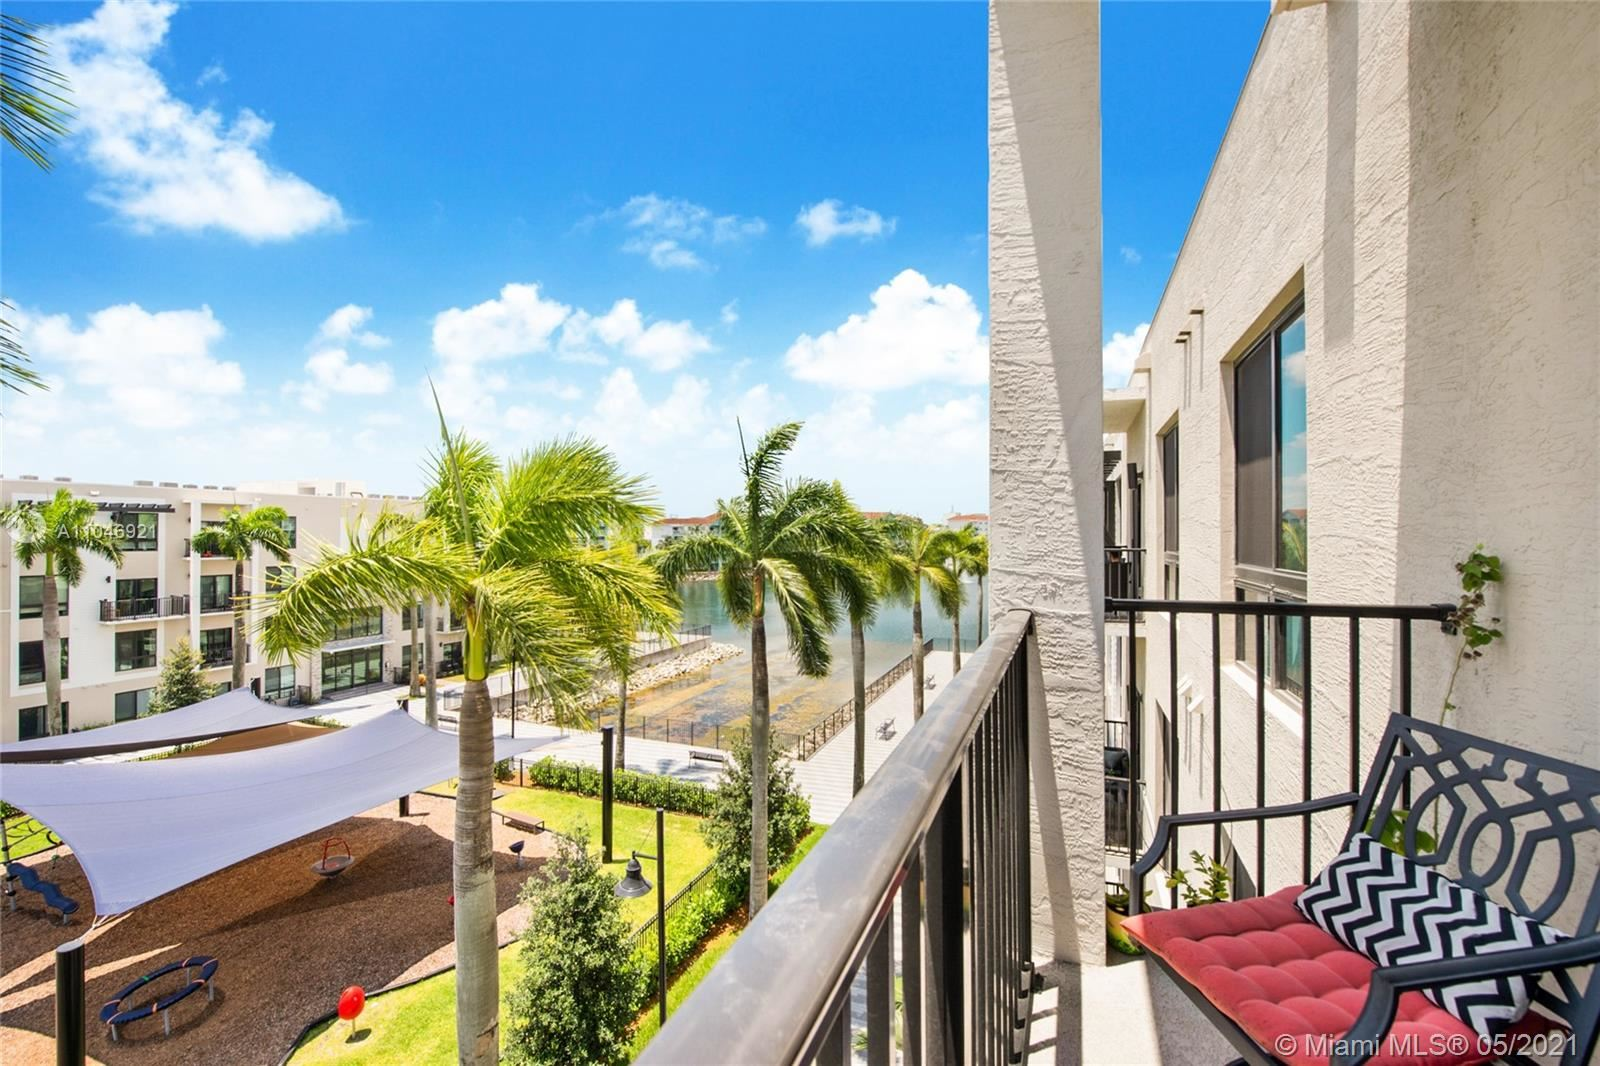 4640 NW 84th Ave #47, Doral, FL 33166 - #: A11046921